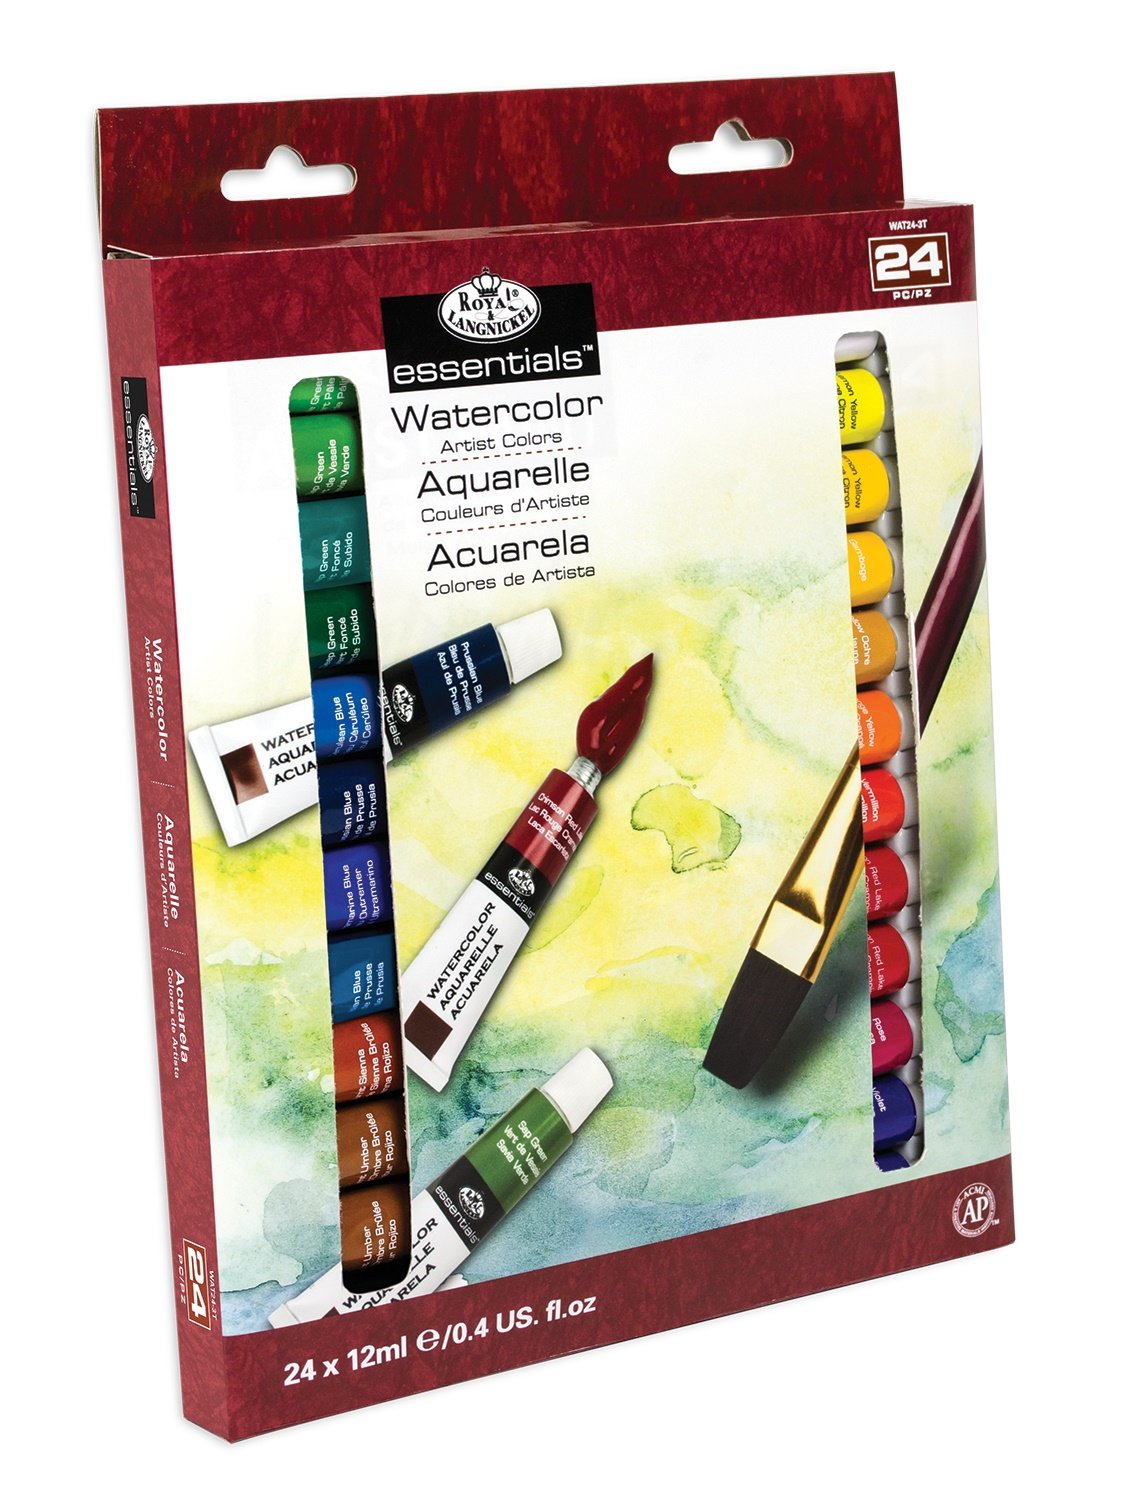 Watercolor artist magazine review - Amazon Com Royal Langnickel Watercolor Artist Tube Paint 12ml 24 Pack